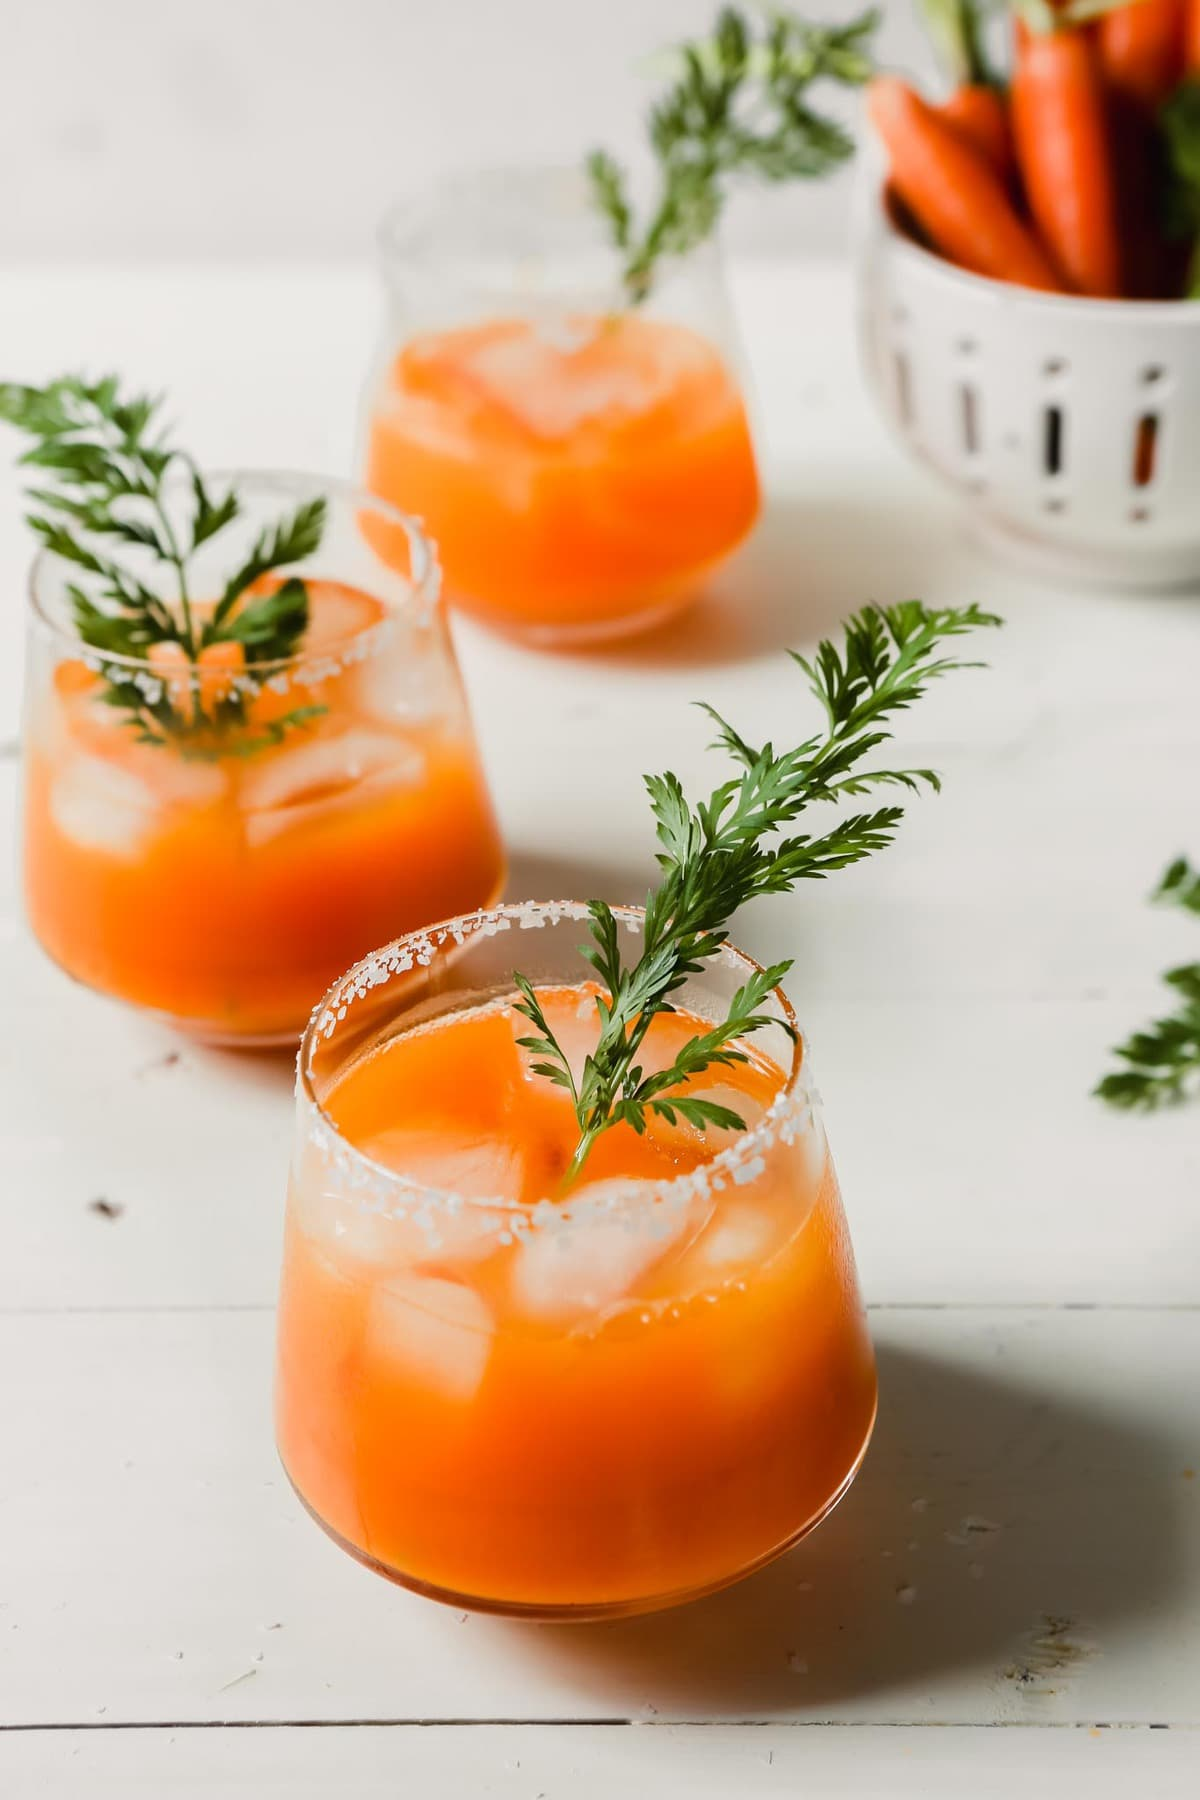 Carrot Cocktail Margaritas topped with green herbs and in glasses with ice.